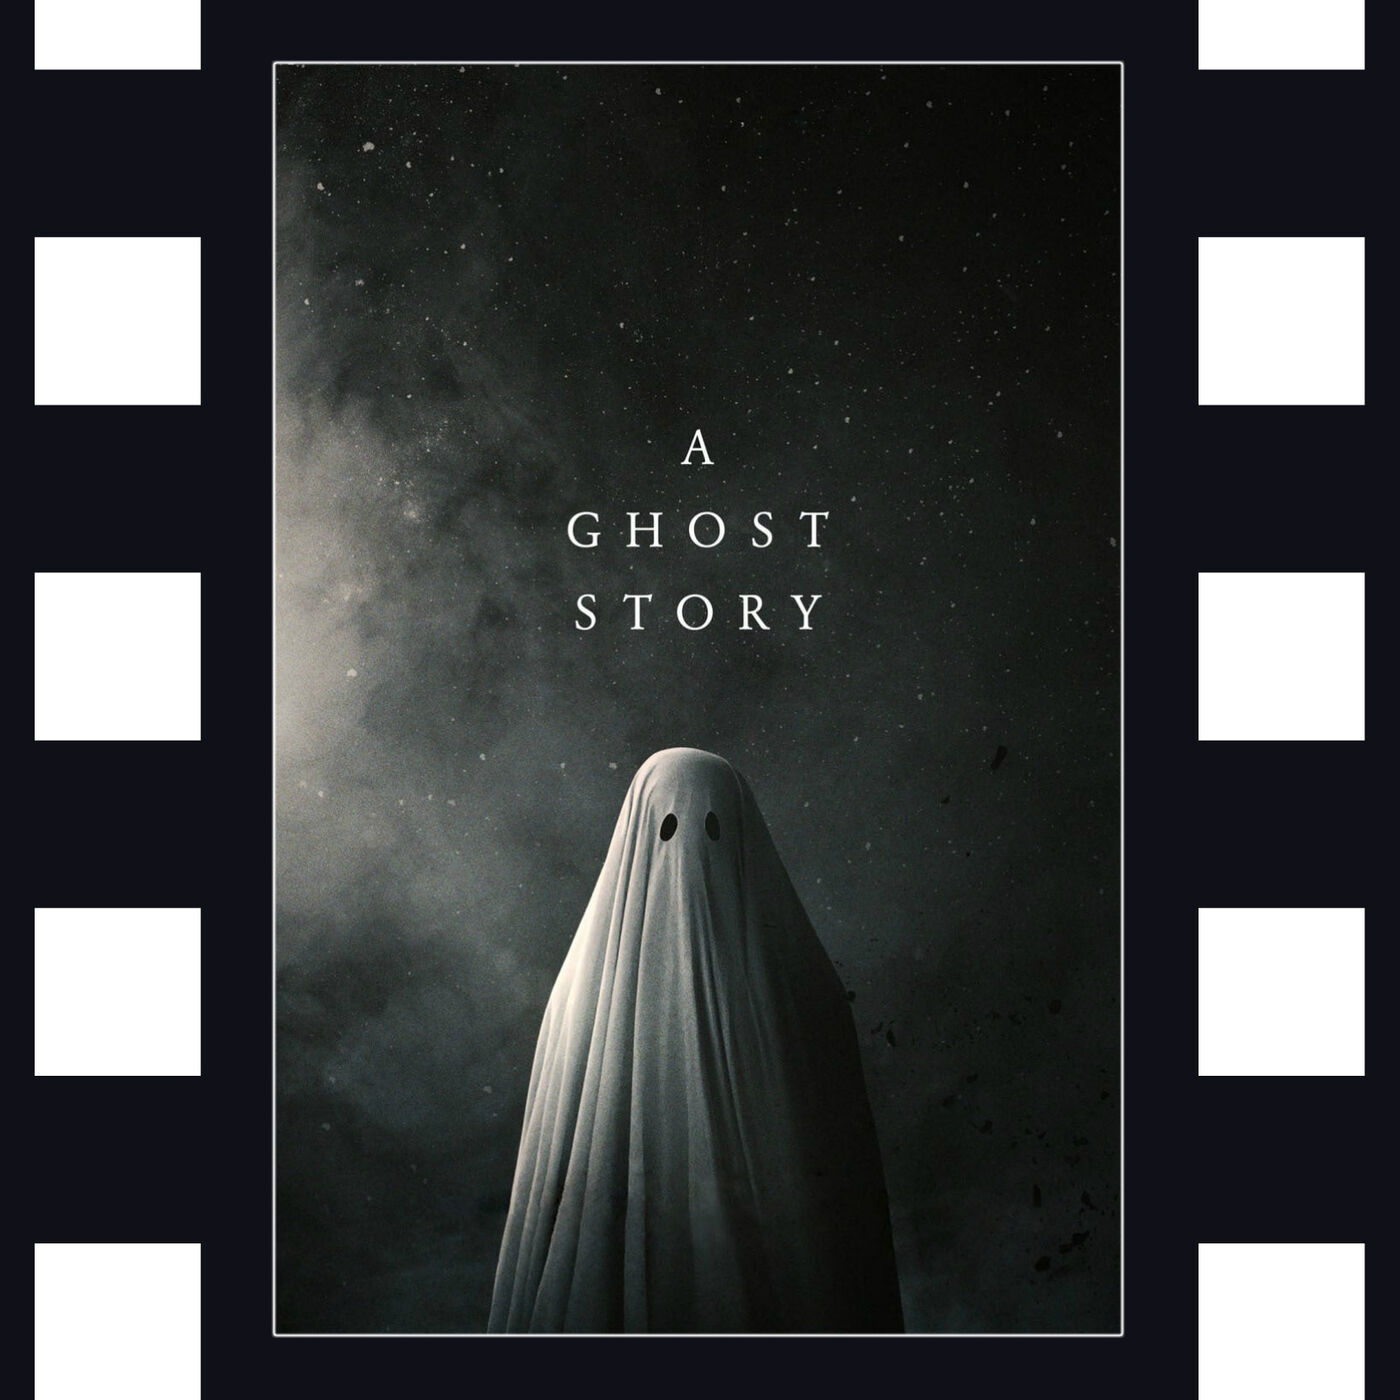 A Ghost Story - On Time, Grief, and Interpreting Media